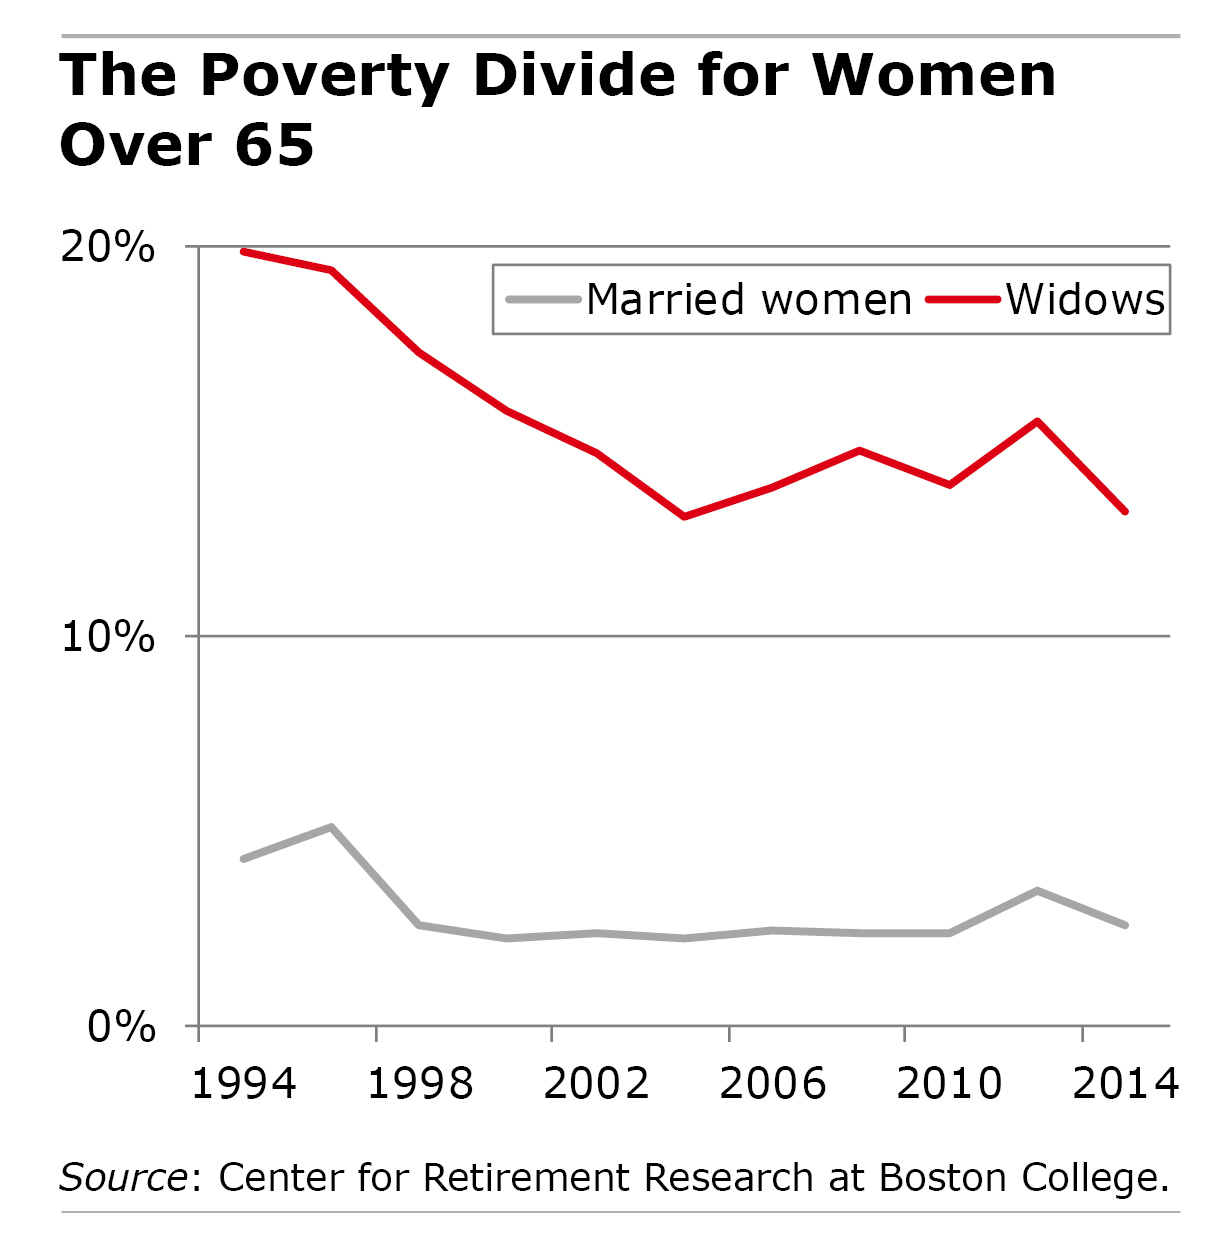 Line chart showing poverty rates for widows and married women